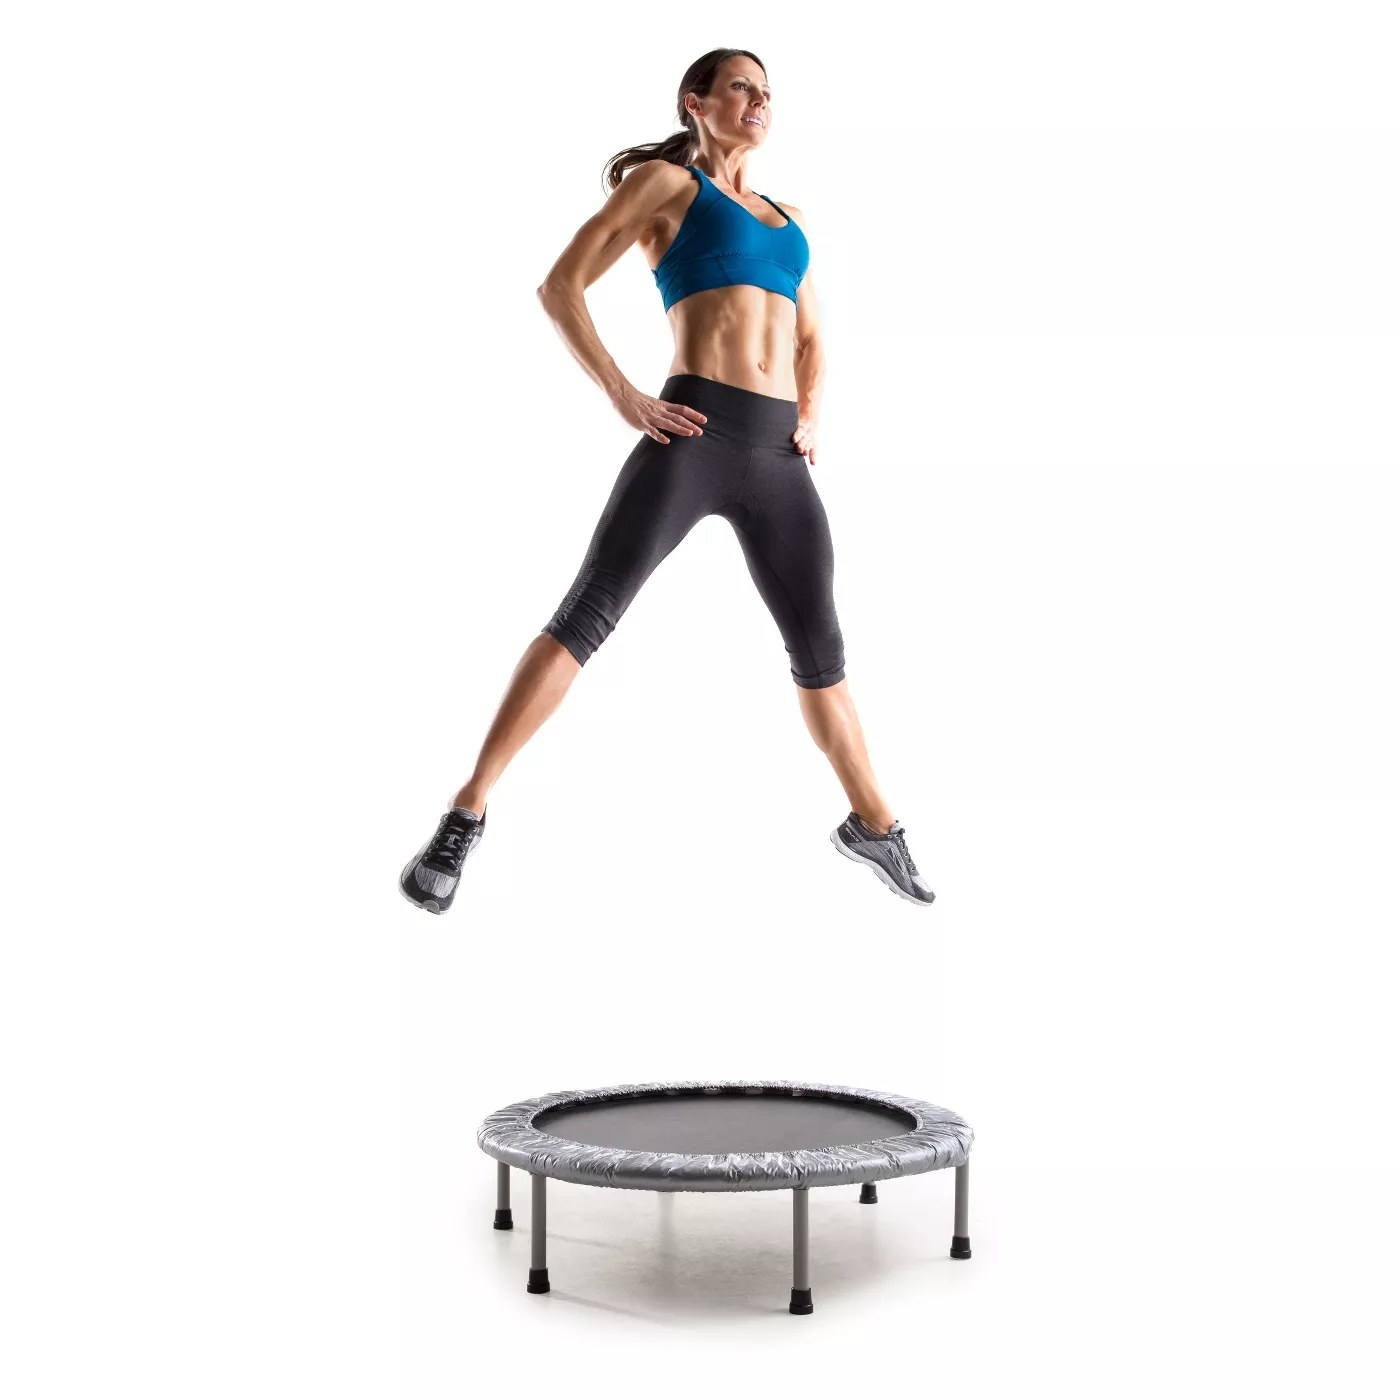 A model using the trampoline